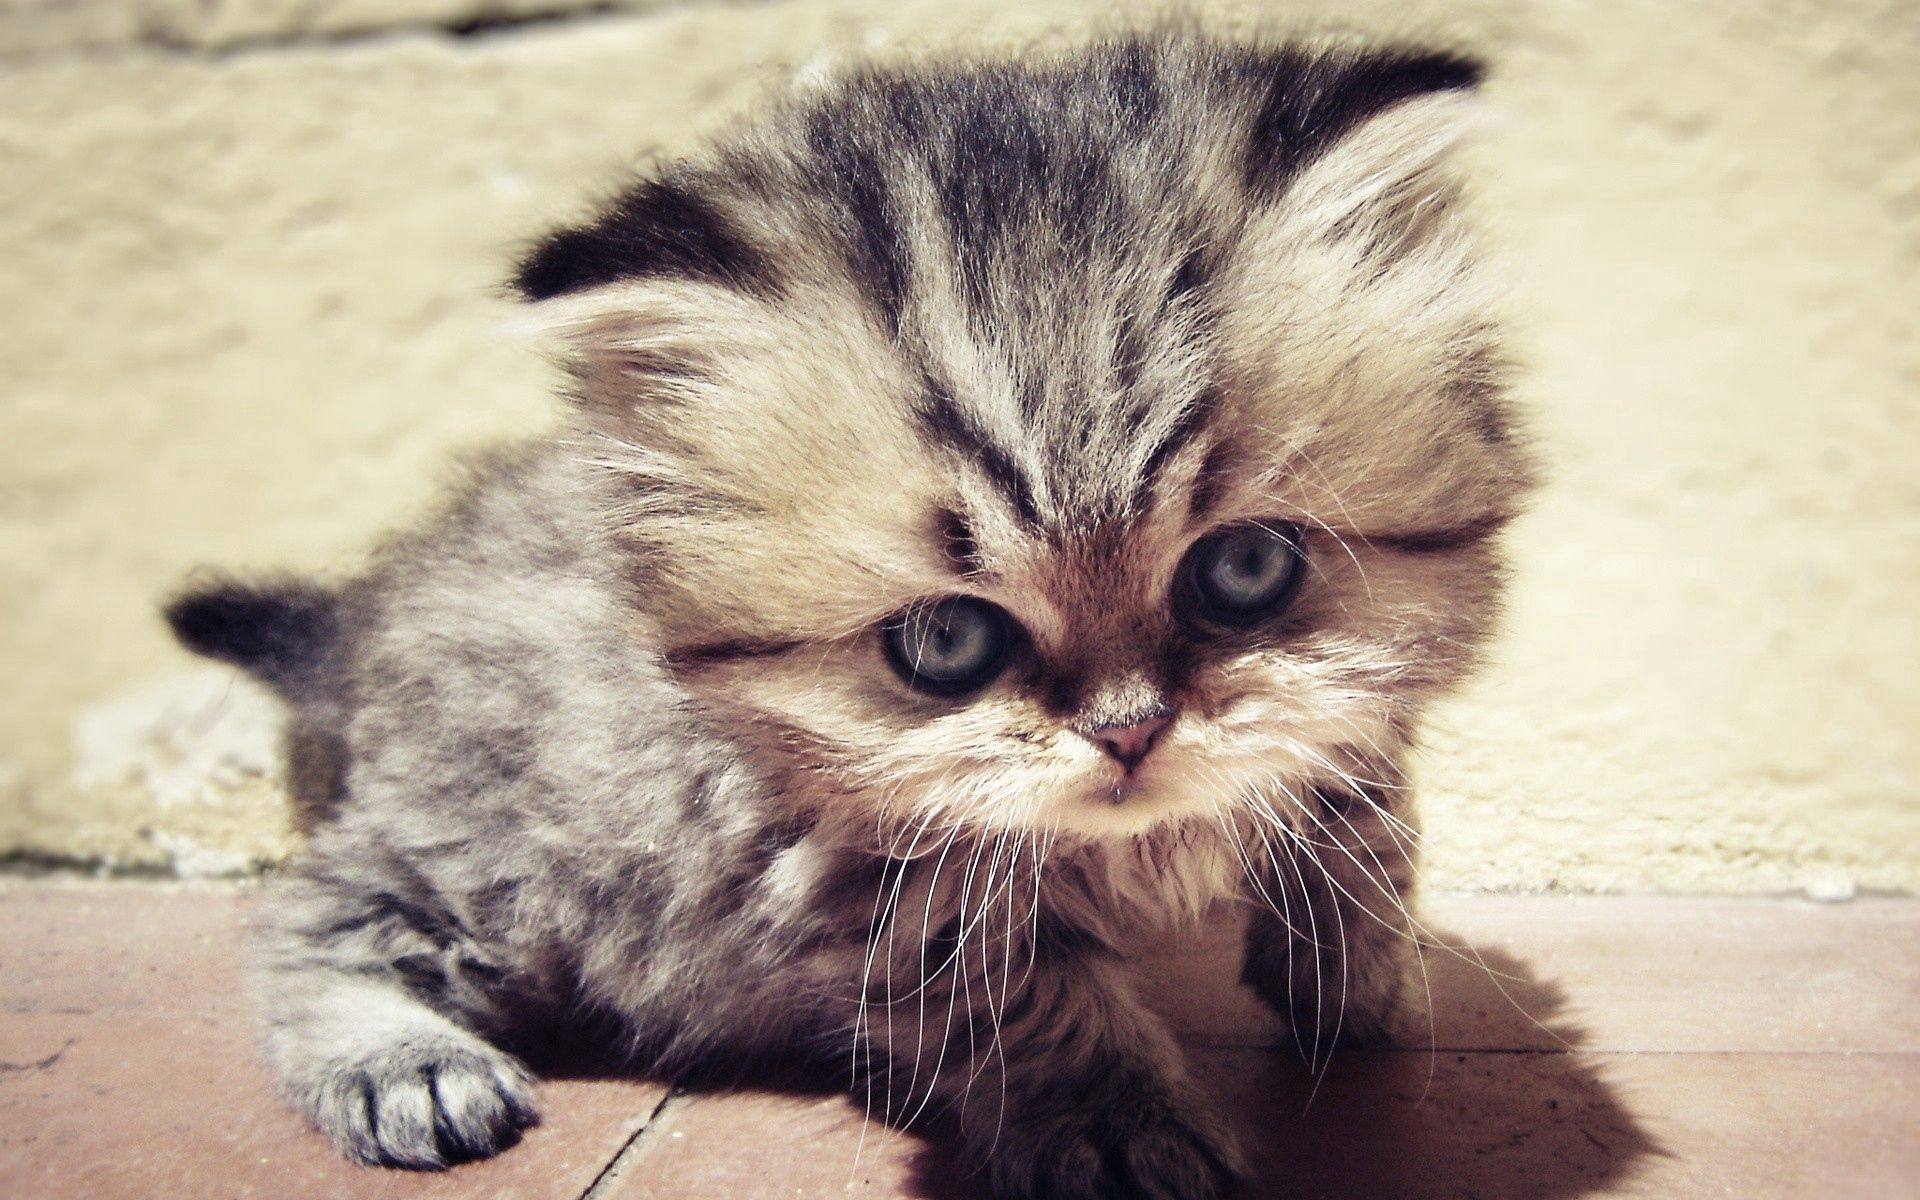 133766 download wallpaper Animals, Kitty, Kitten, Fluffy, Muzzle, Nice, Sweetheart, Sight, Opinion screensavers and pictures for free